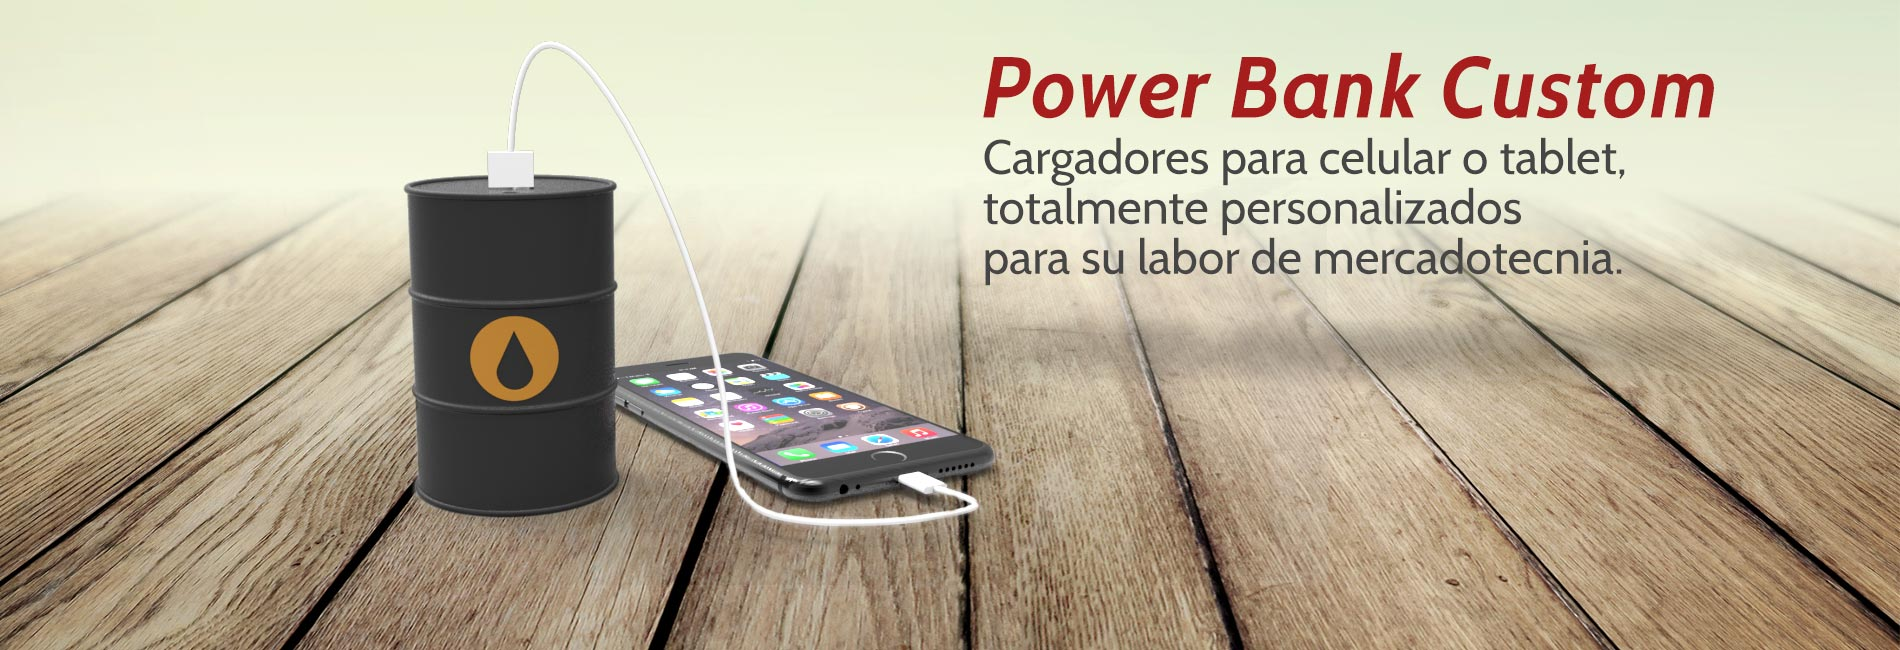 Cargadores Power Bank Promocionales Custom